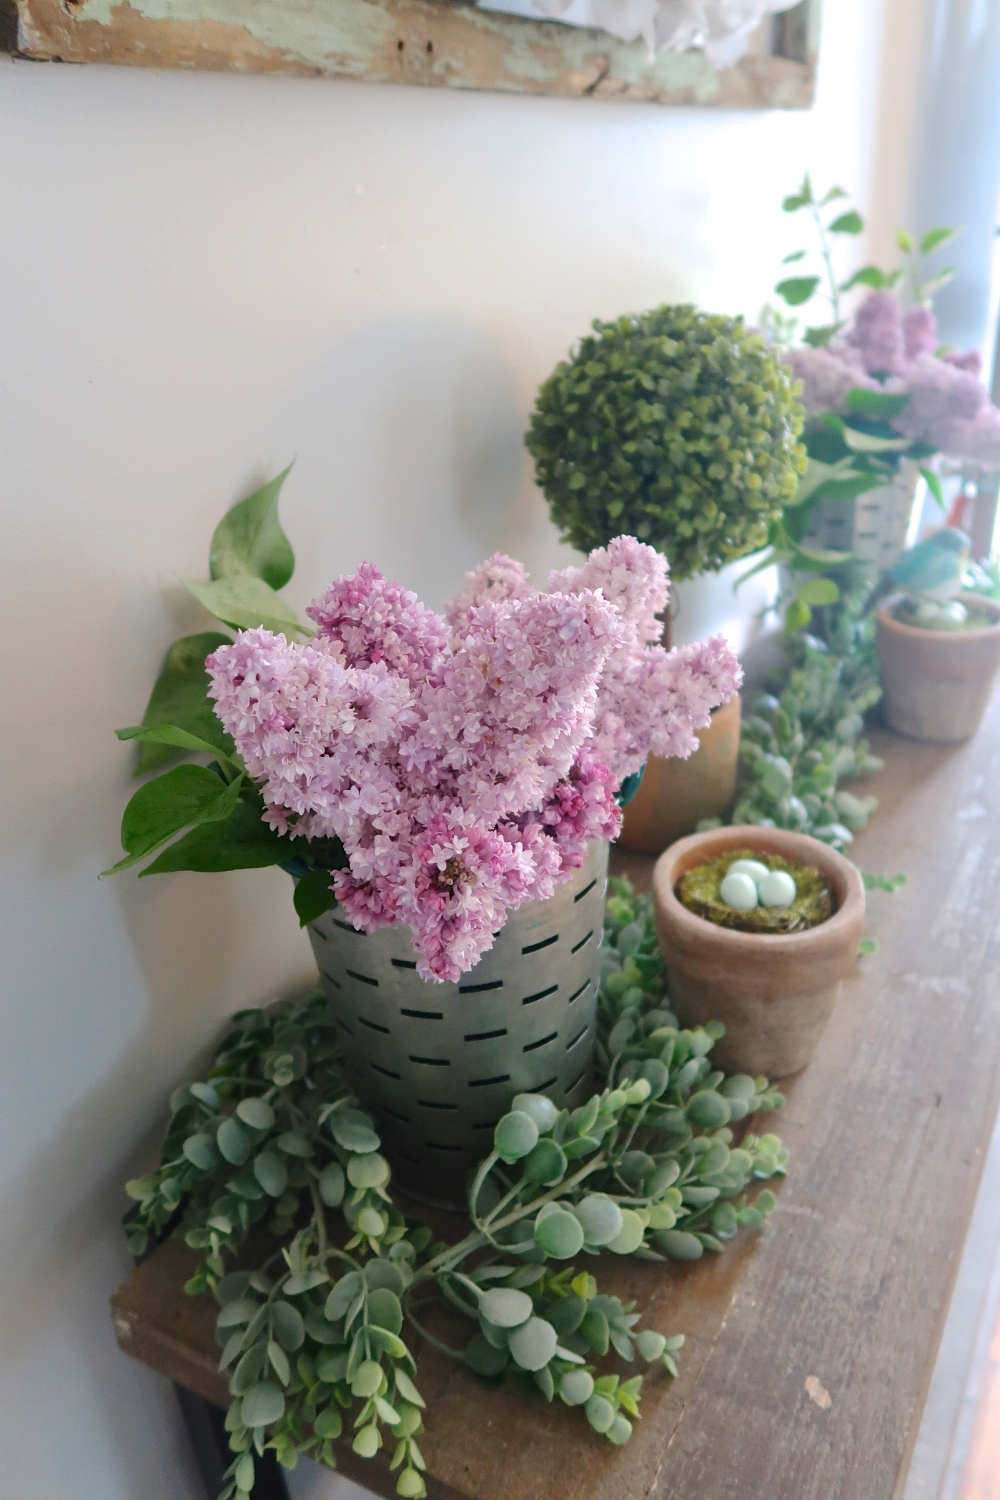 Lilacs and olive baskets